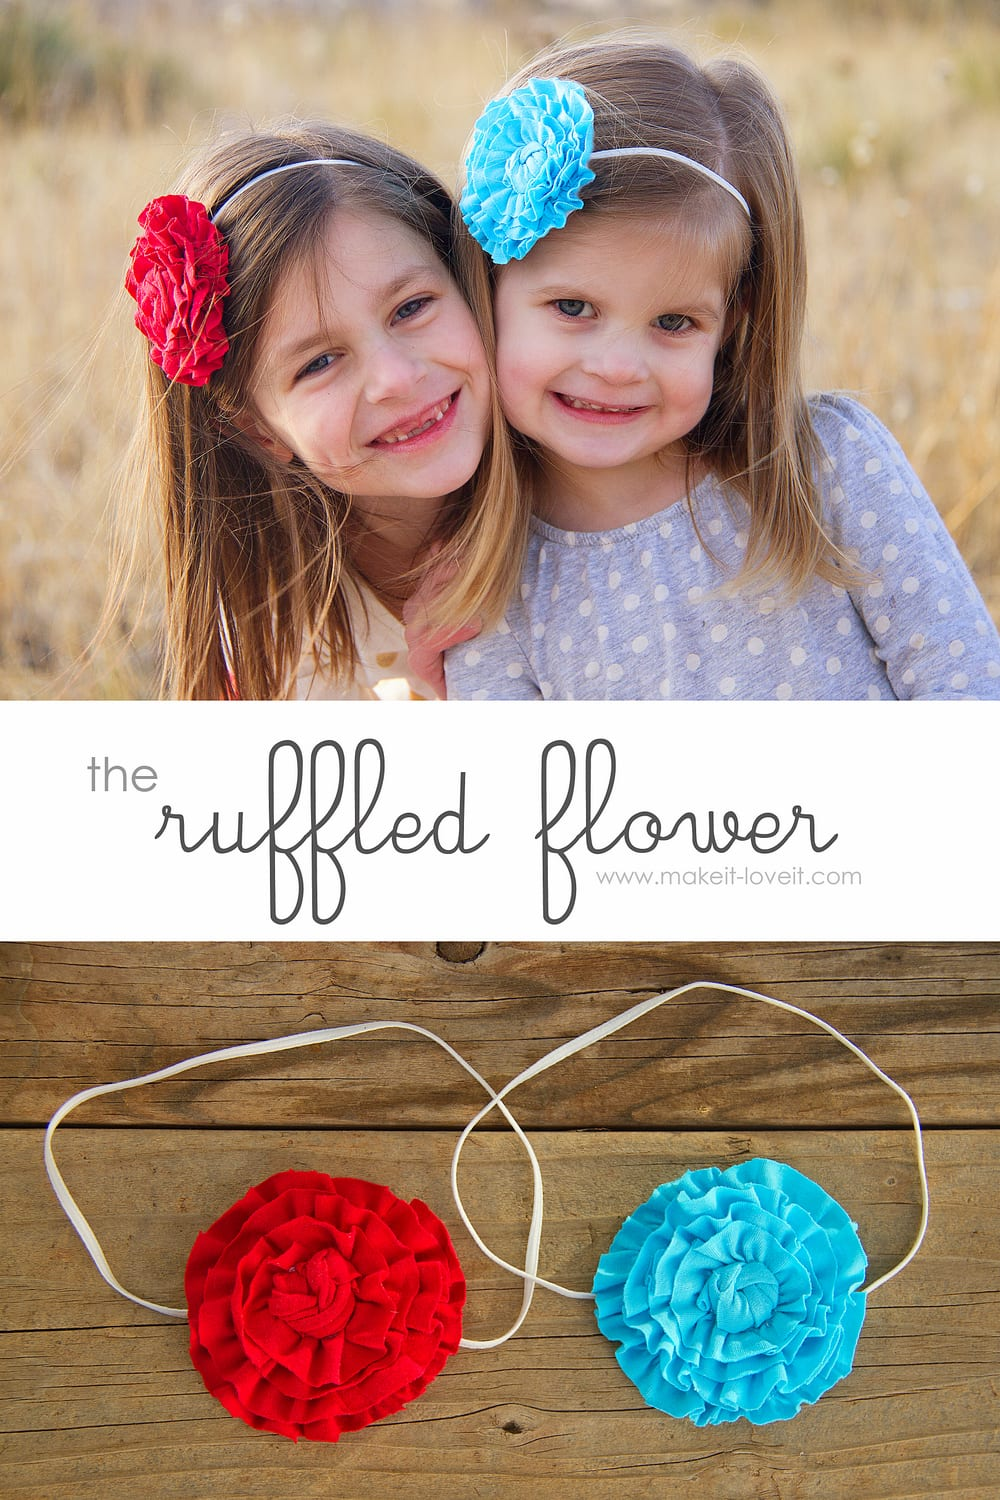 The Ruffled Flower…..for headbands, clothing, totes, etc.